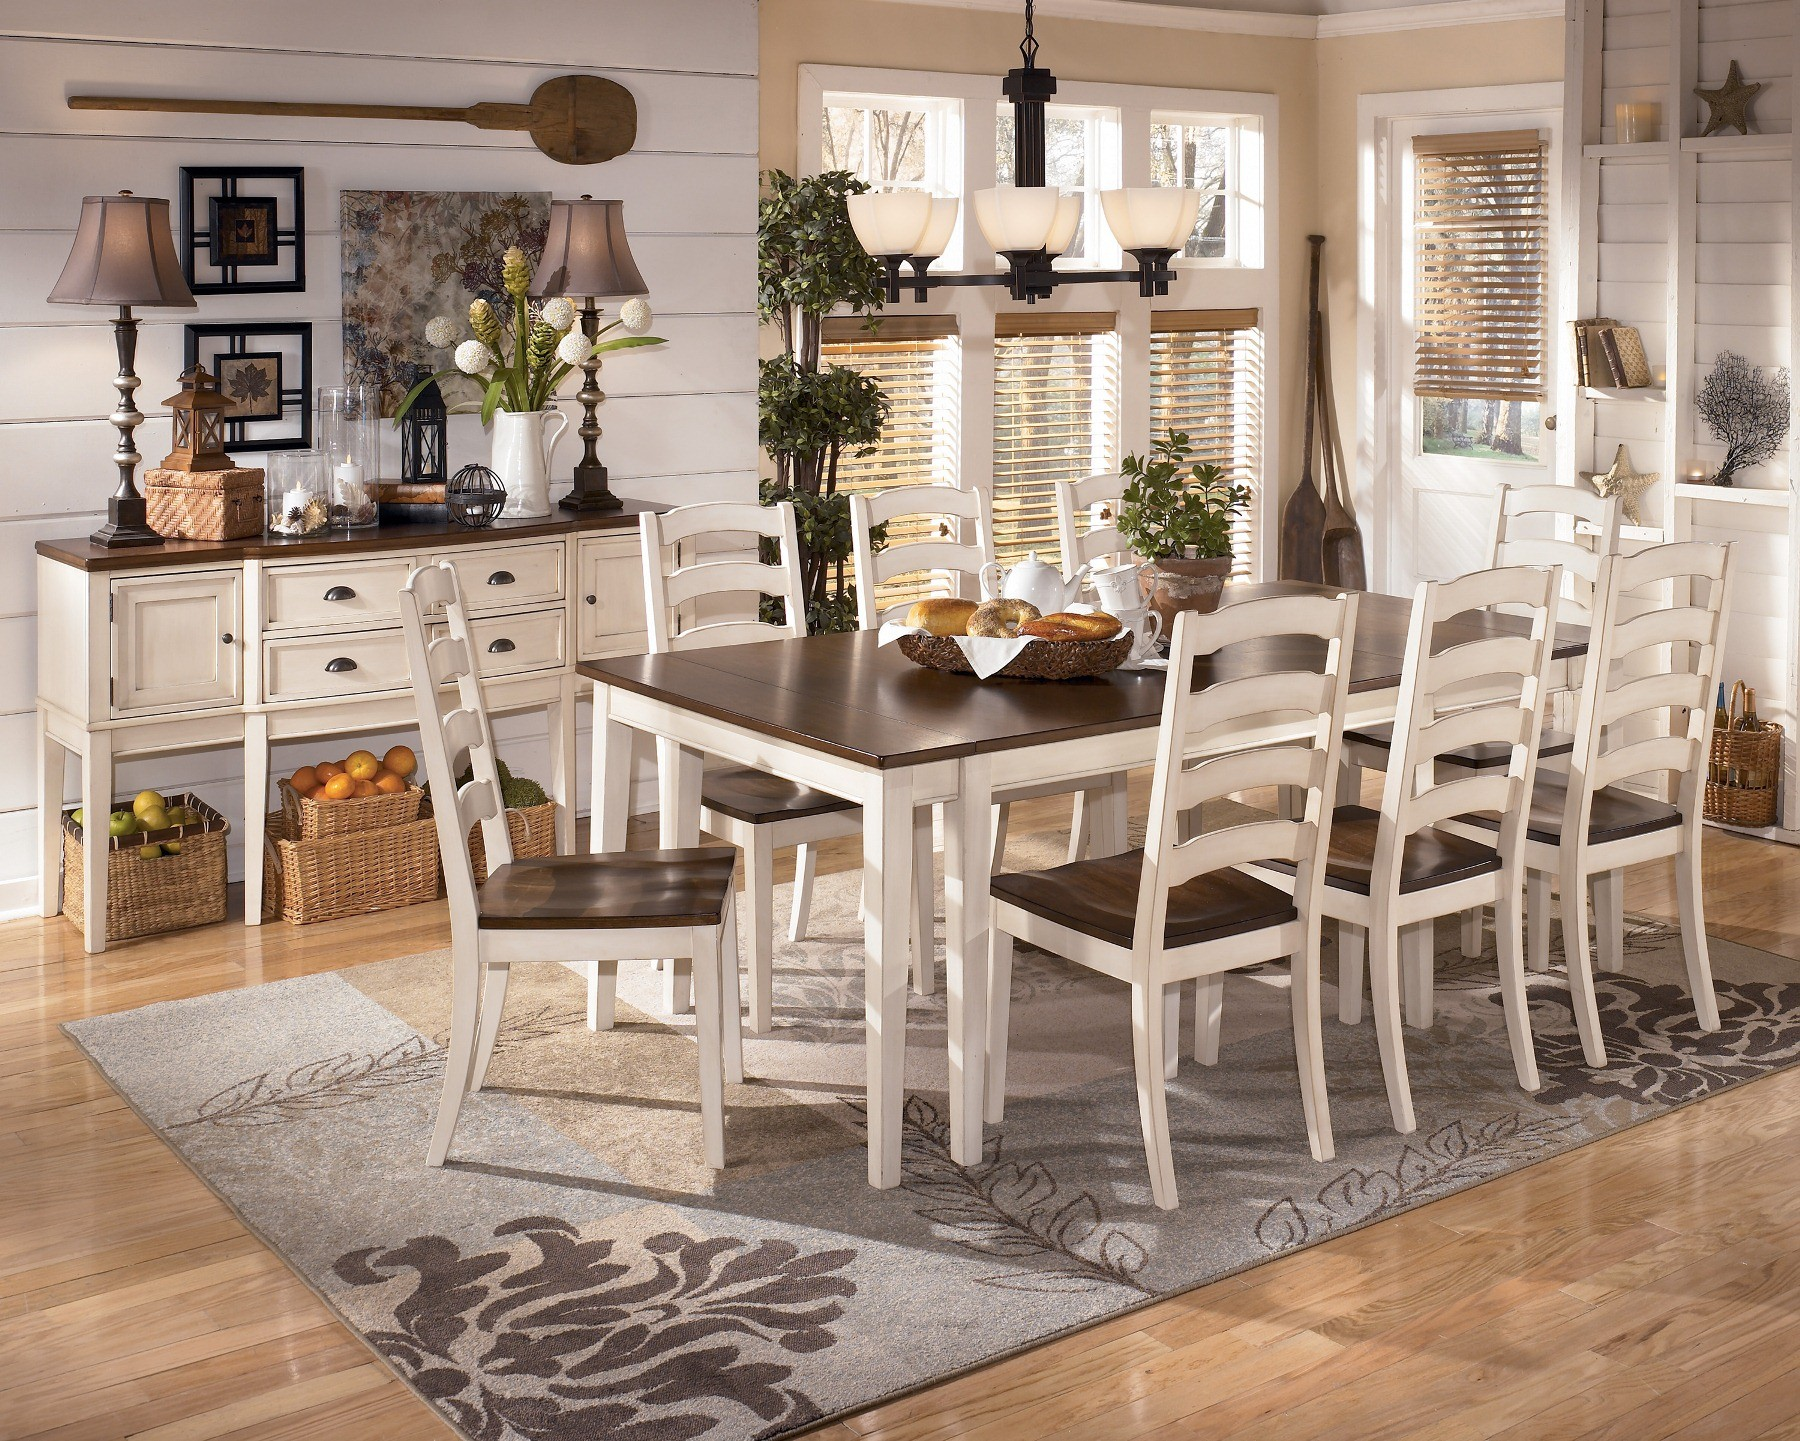 White dining room table - Country Dining Room Sets French Country Dining E Dcor Ideas Country Dining Room Sets